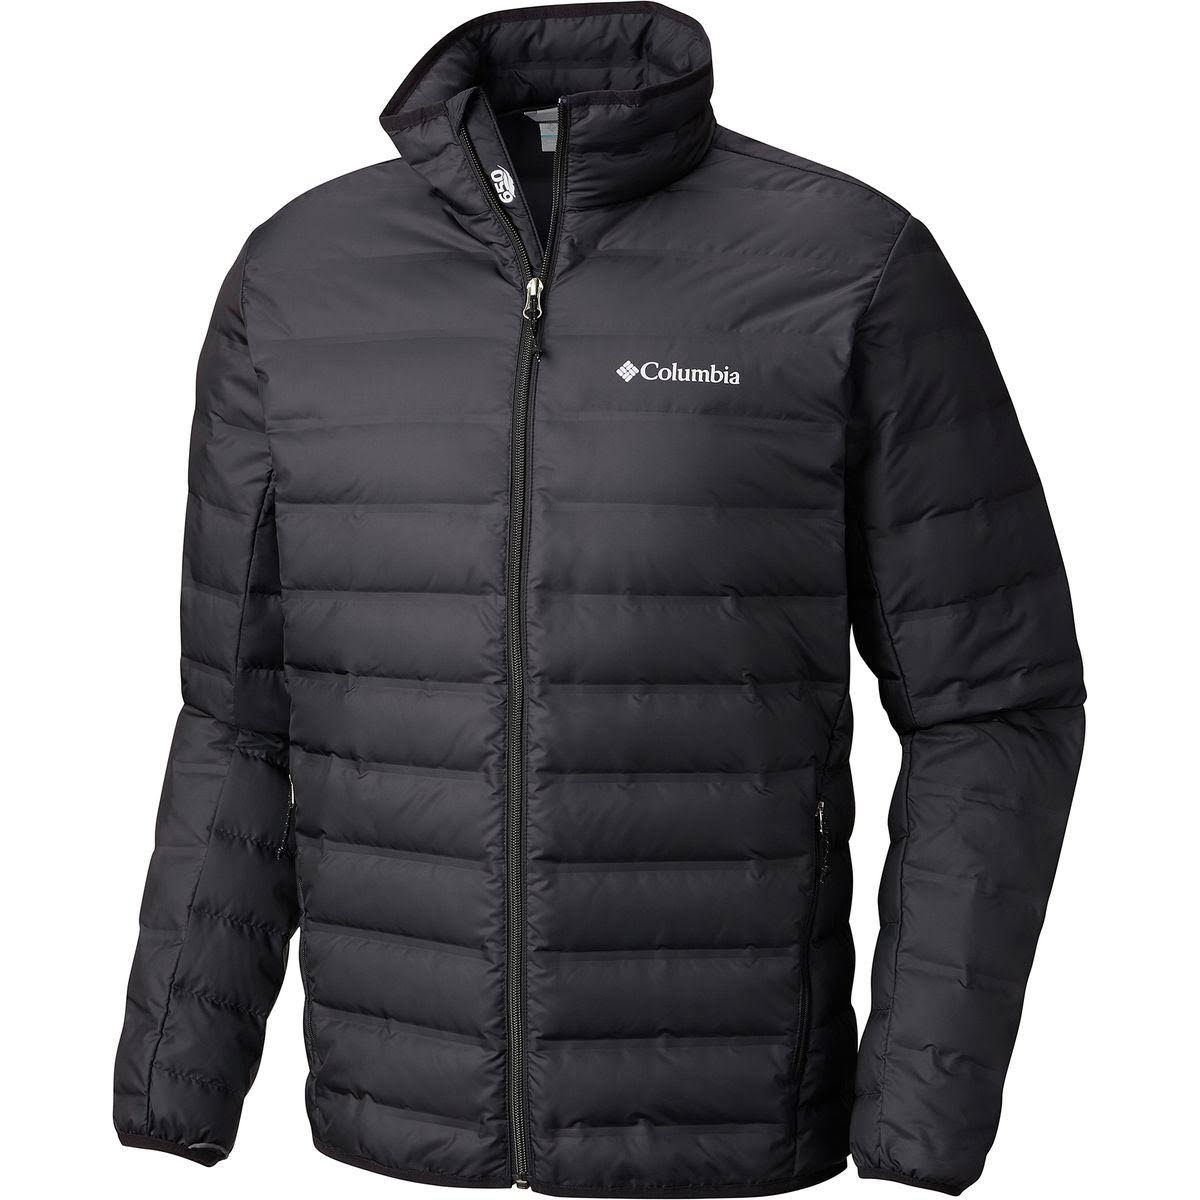 Columbia Men's Lake 22 Down Jacket - Black, Medium